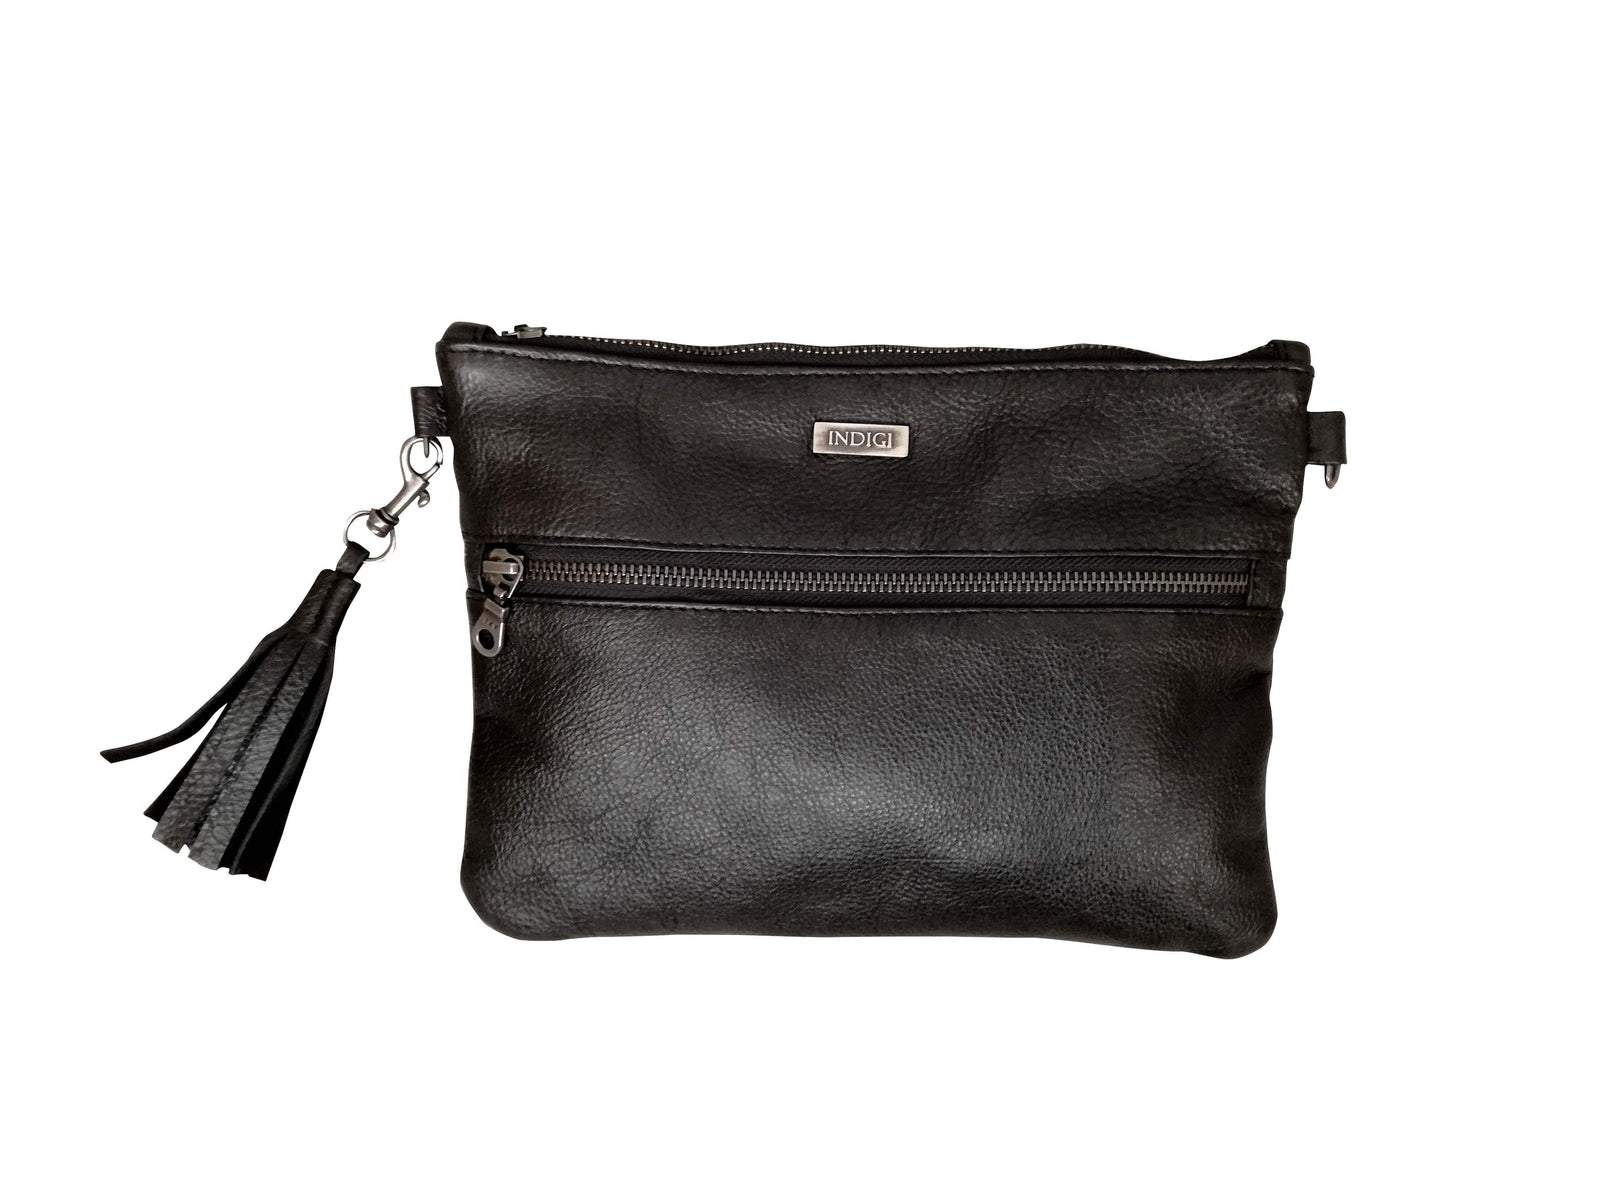 Black Leather Sling & Clutch Bag